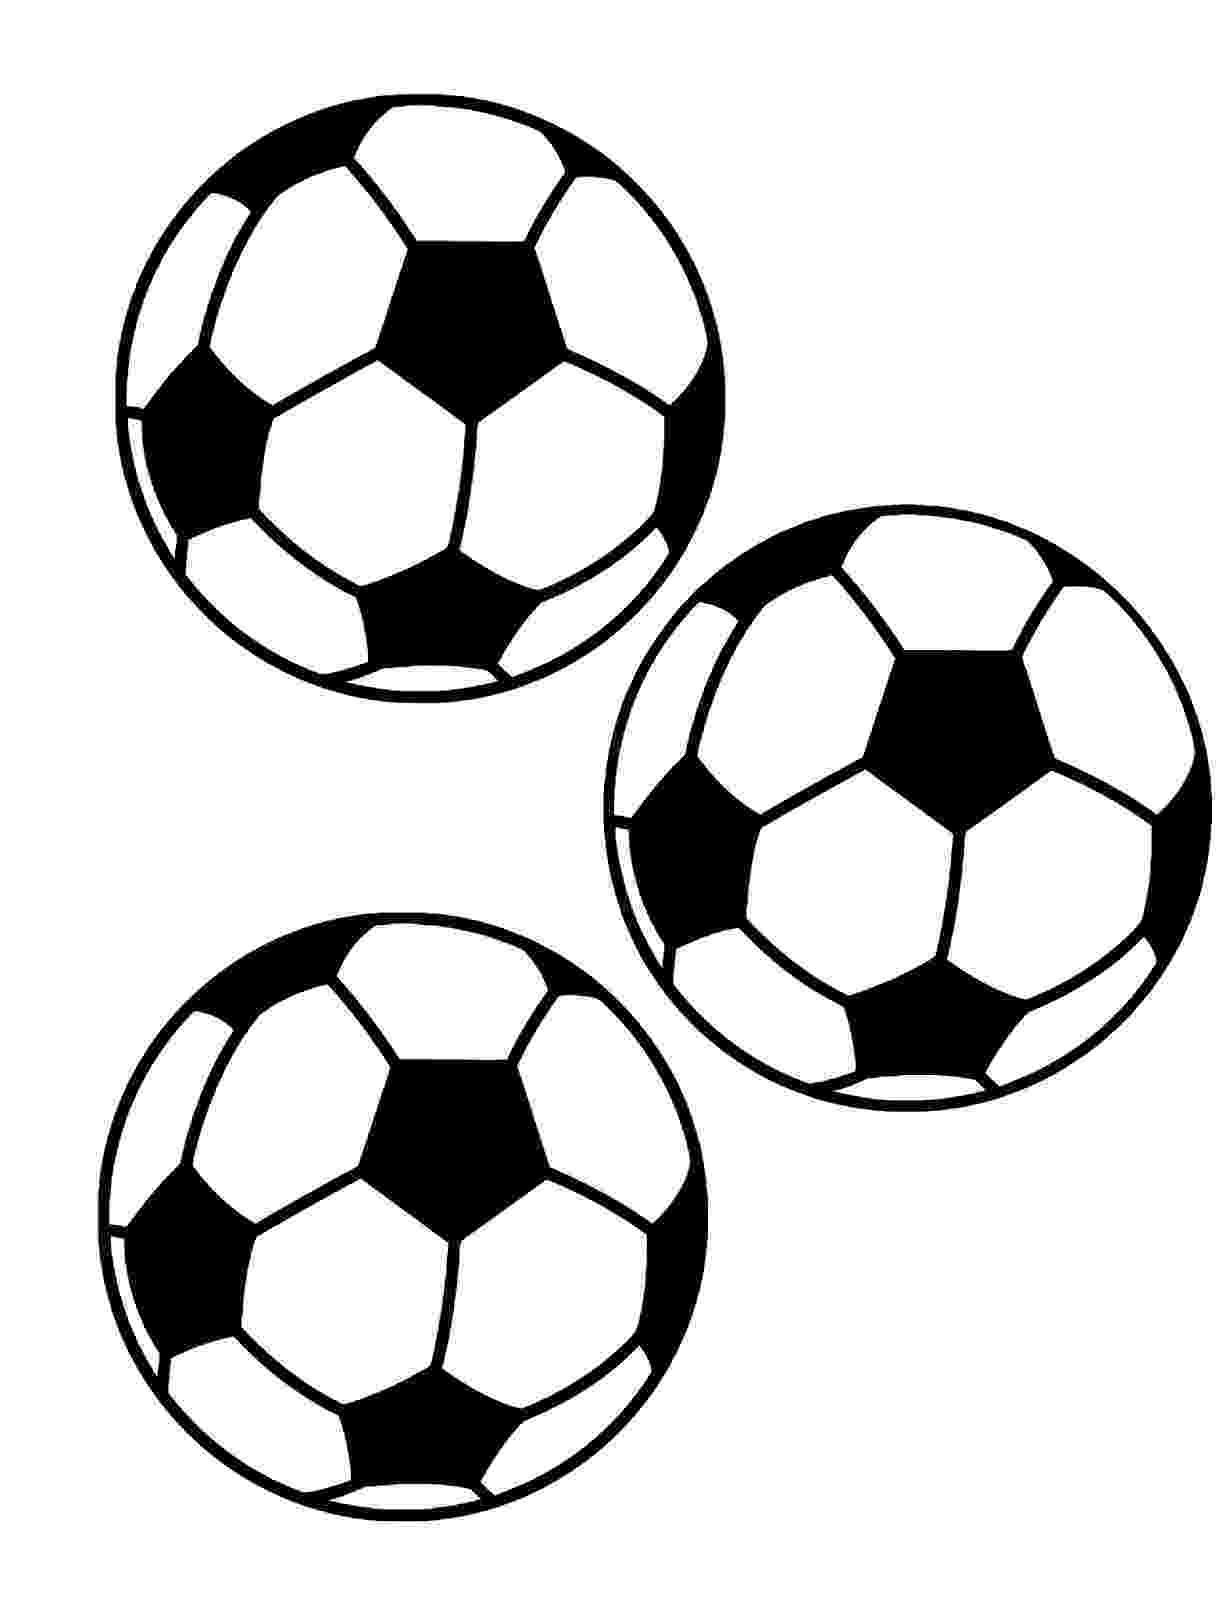 colouring sheet of ball printable picture of a soccer ball clipart best colouring ball sheet of